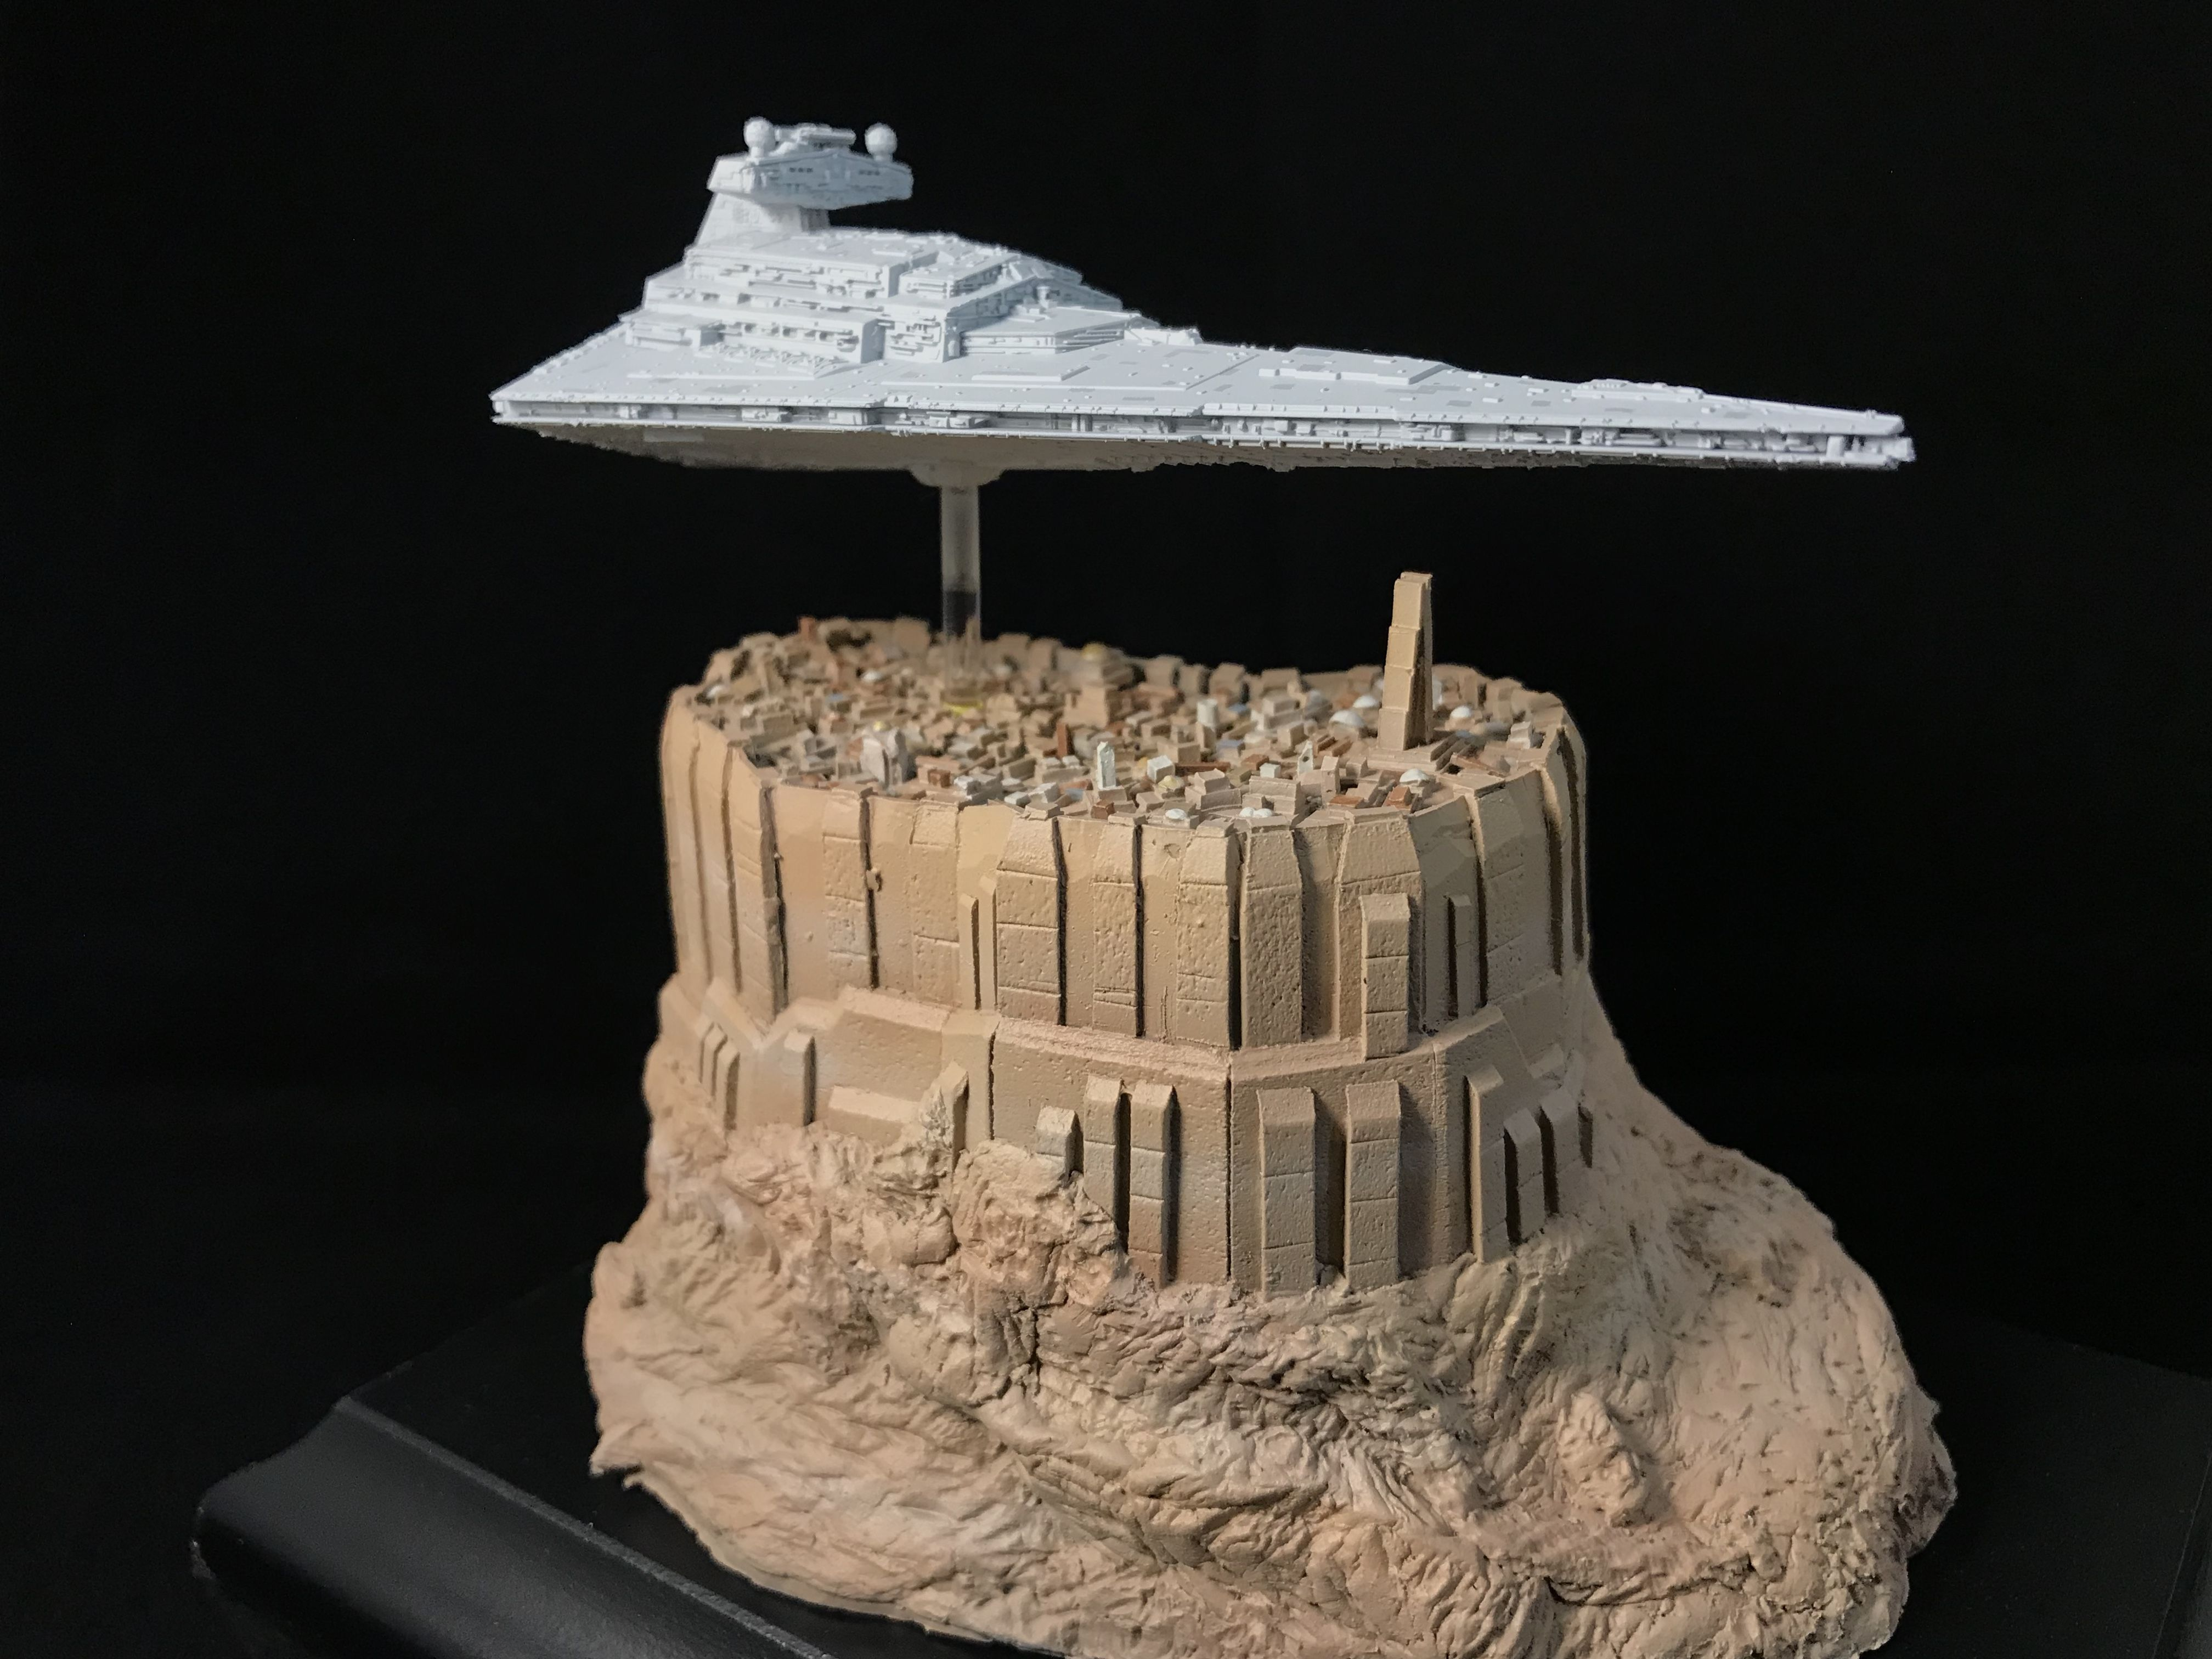 Star Wars Küche Pin By Patrick Reilly On Sci Fi Scale Models Pinterest Star